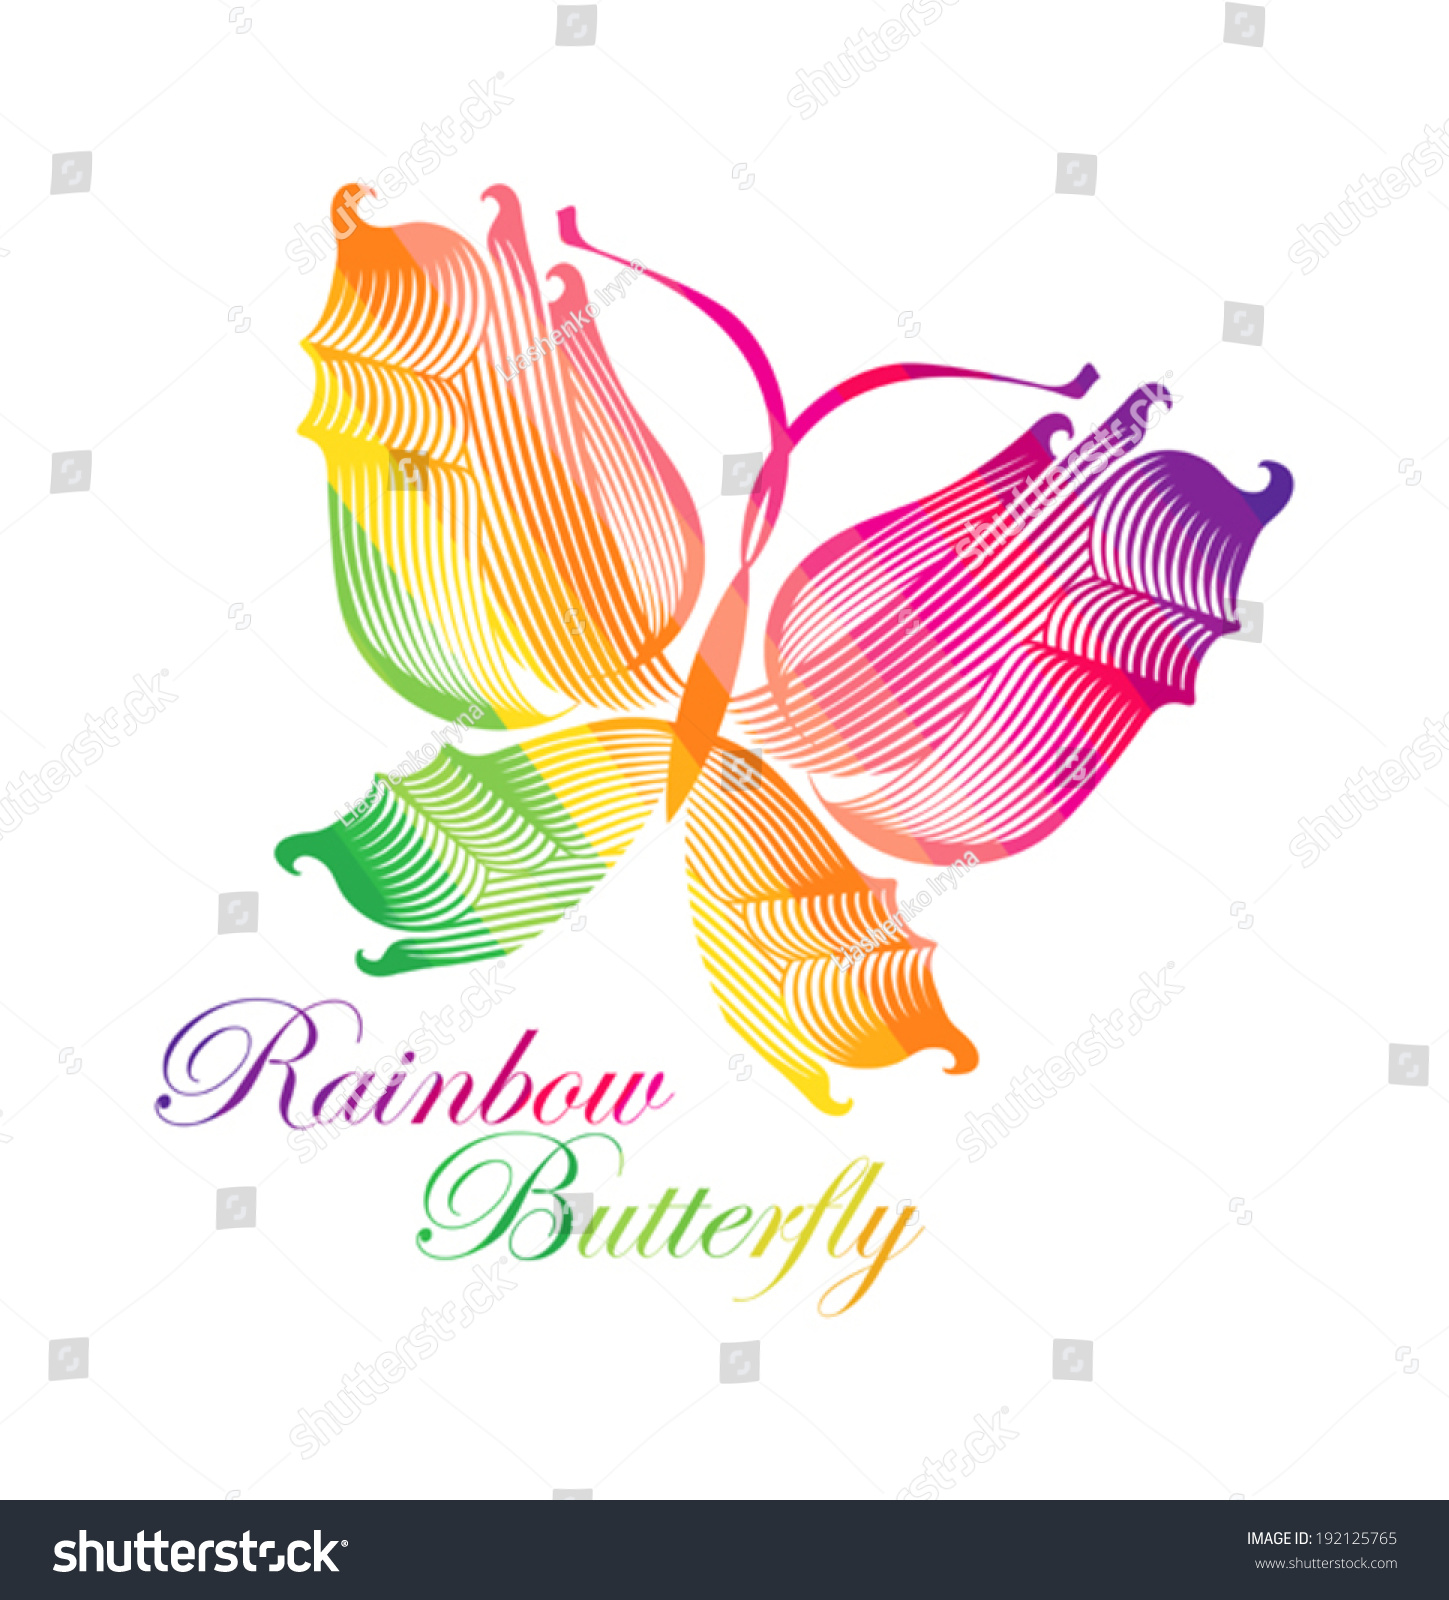 Text butterfly symbol gallery symbol and sign ideas rainbow butterfly symbol butterfly rainbow colors stock vector rainbow butterfly symbol butterfly rainbow colors buycottarizona buycottarizona